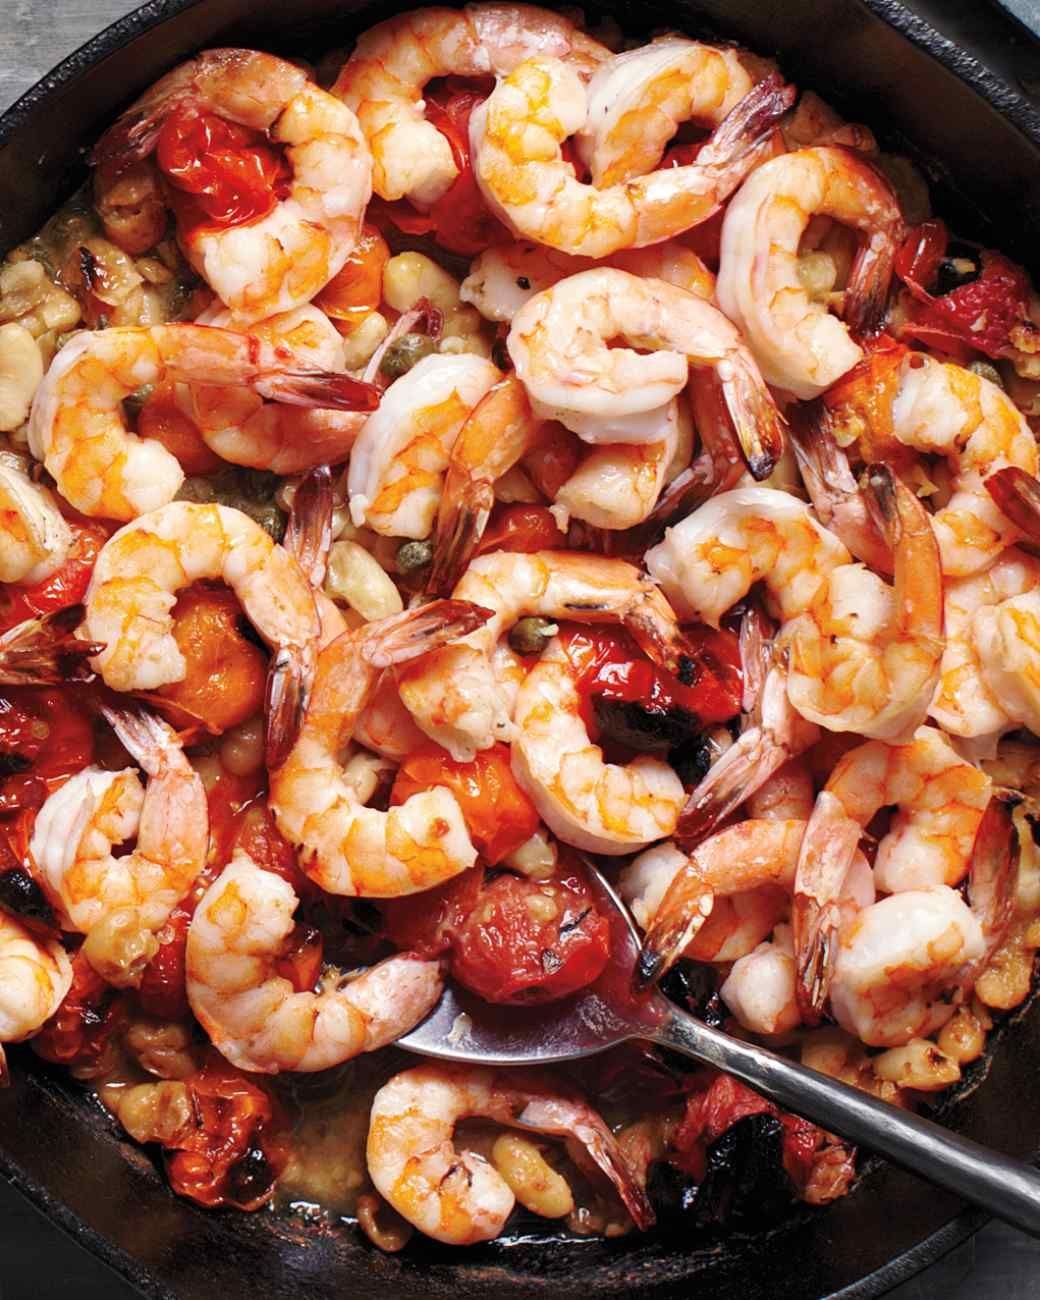 Broiled Shrimp With Tomatoes And White Beans Recipe Broiled Shrimp Food Cast Iron Recipes